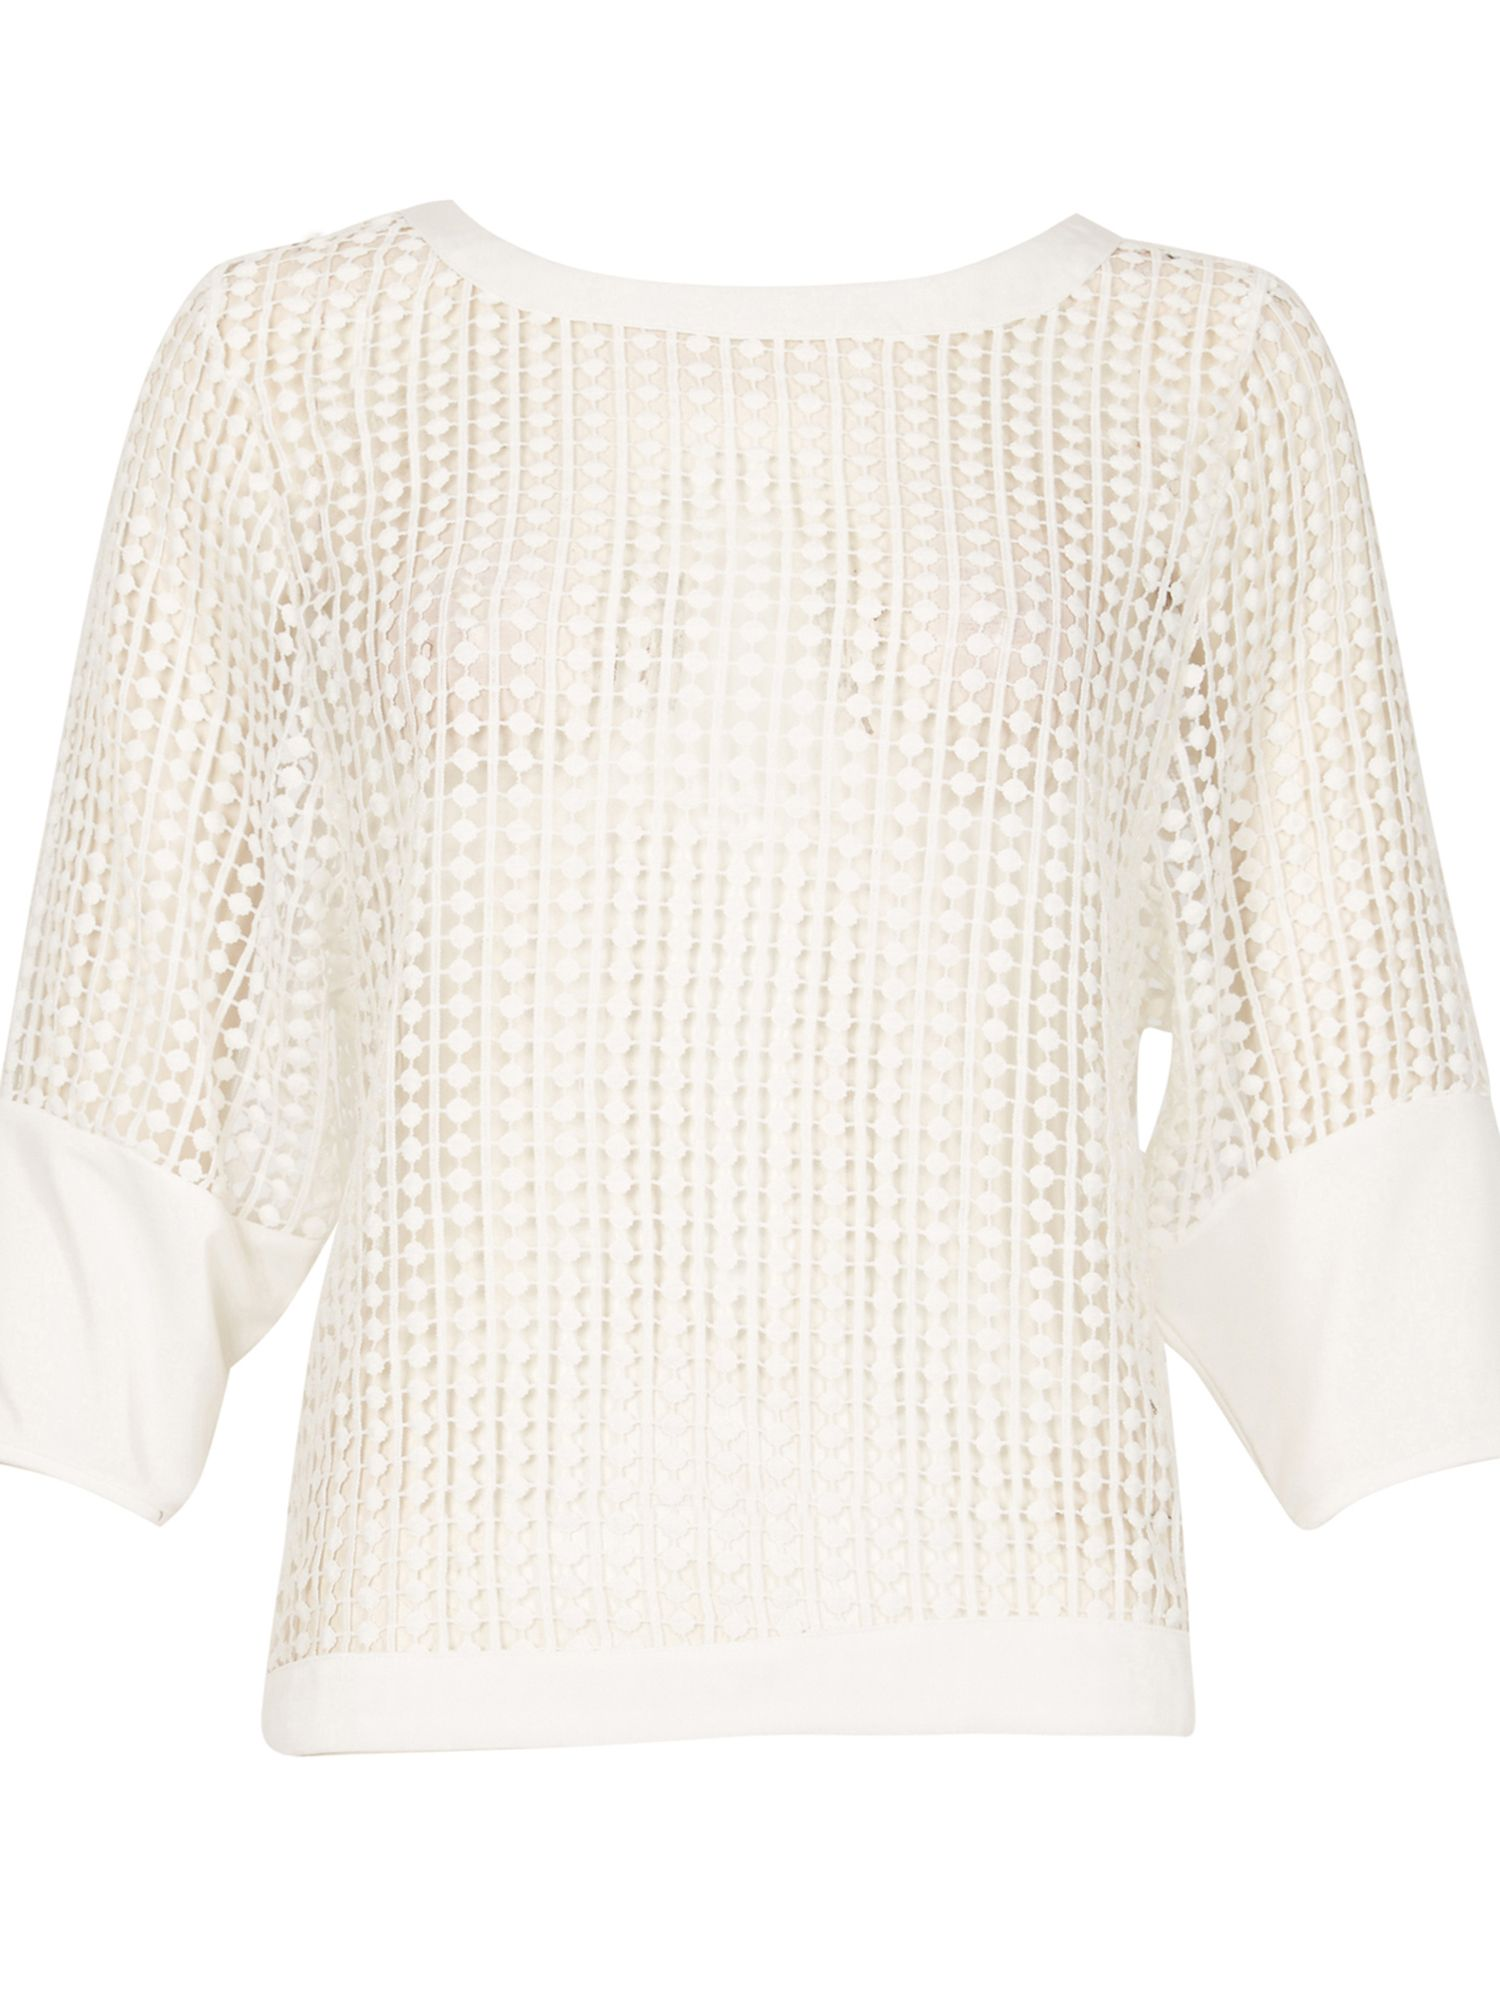 Cutie Textured Mesh Top, White